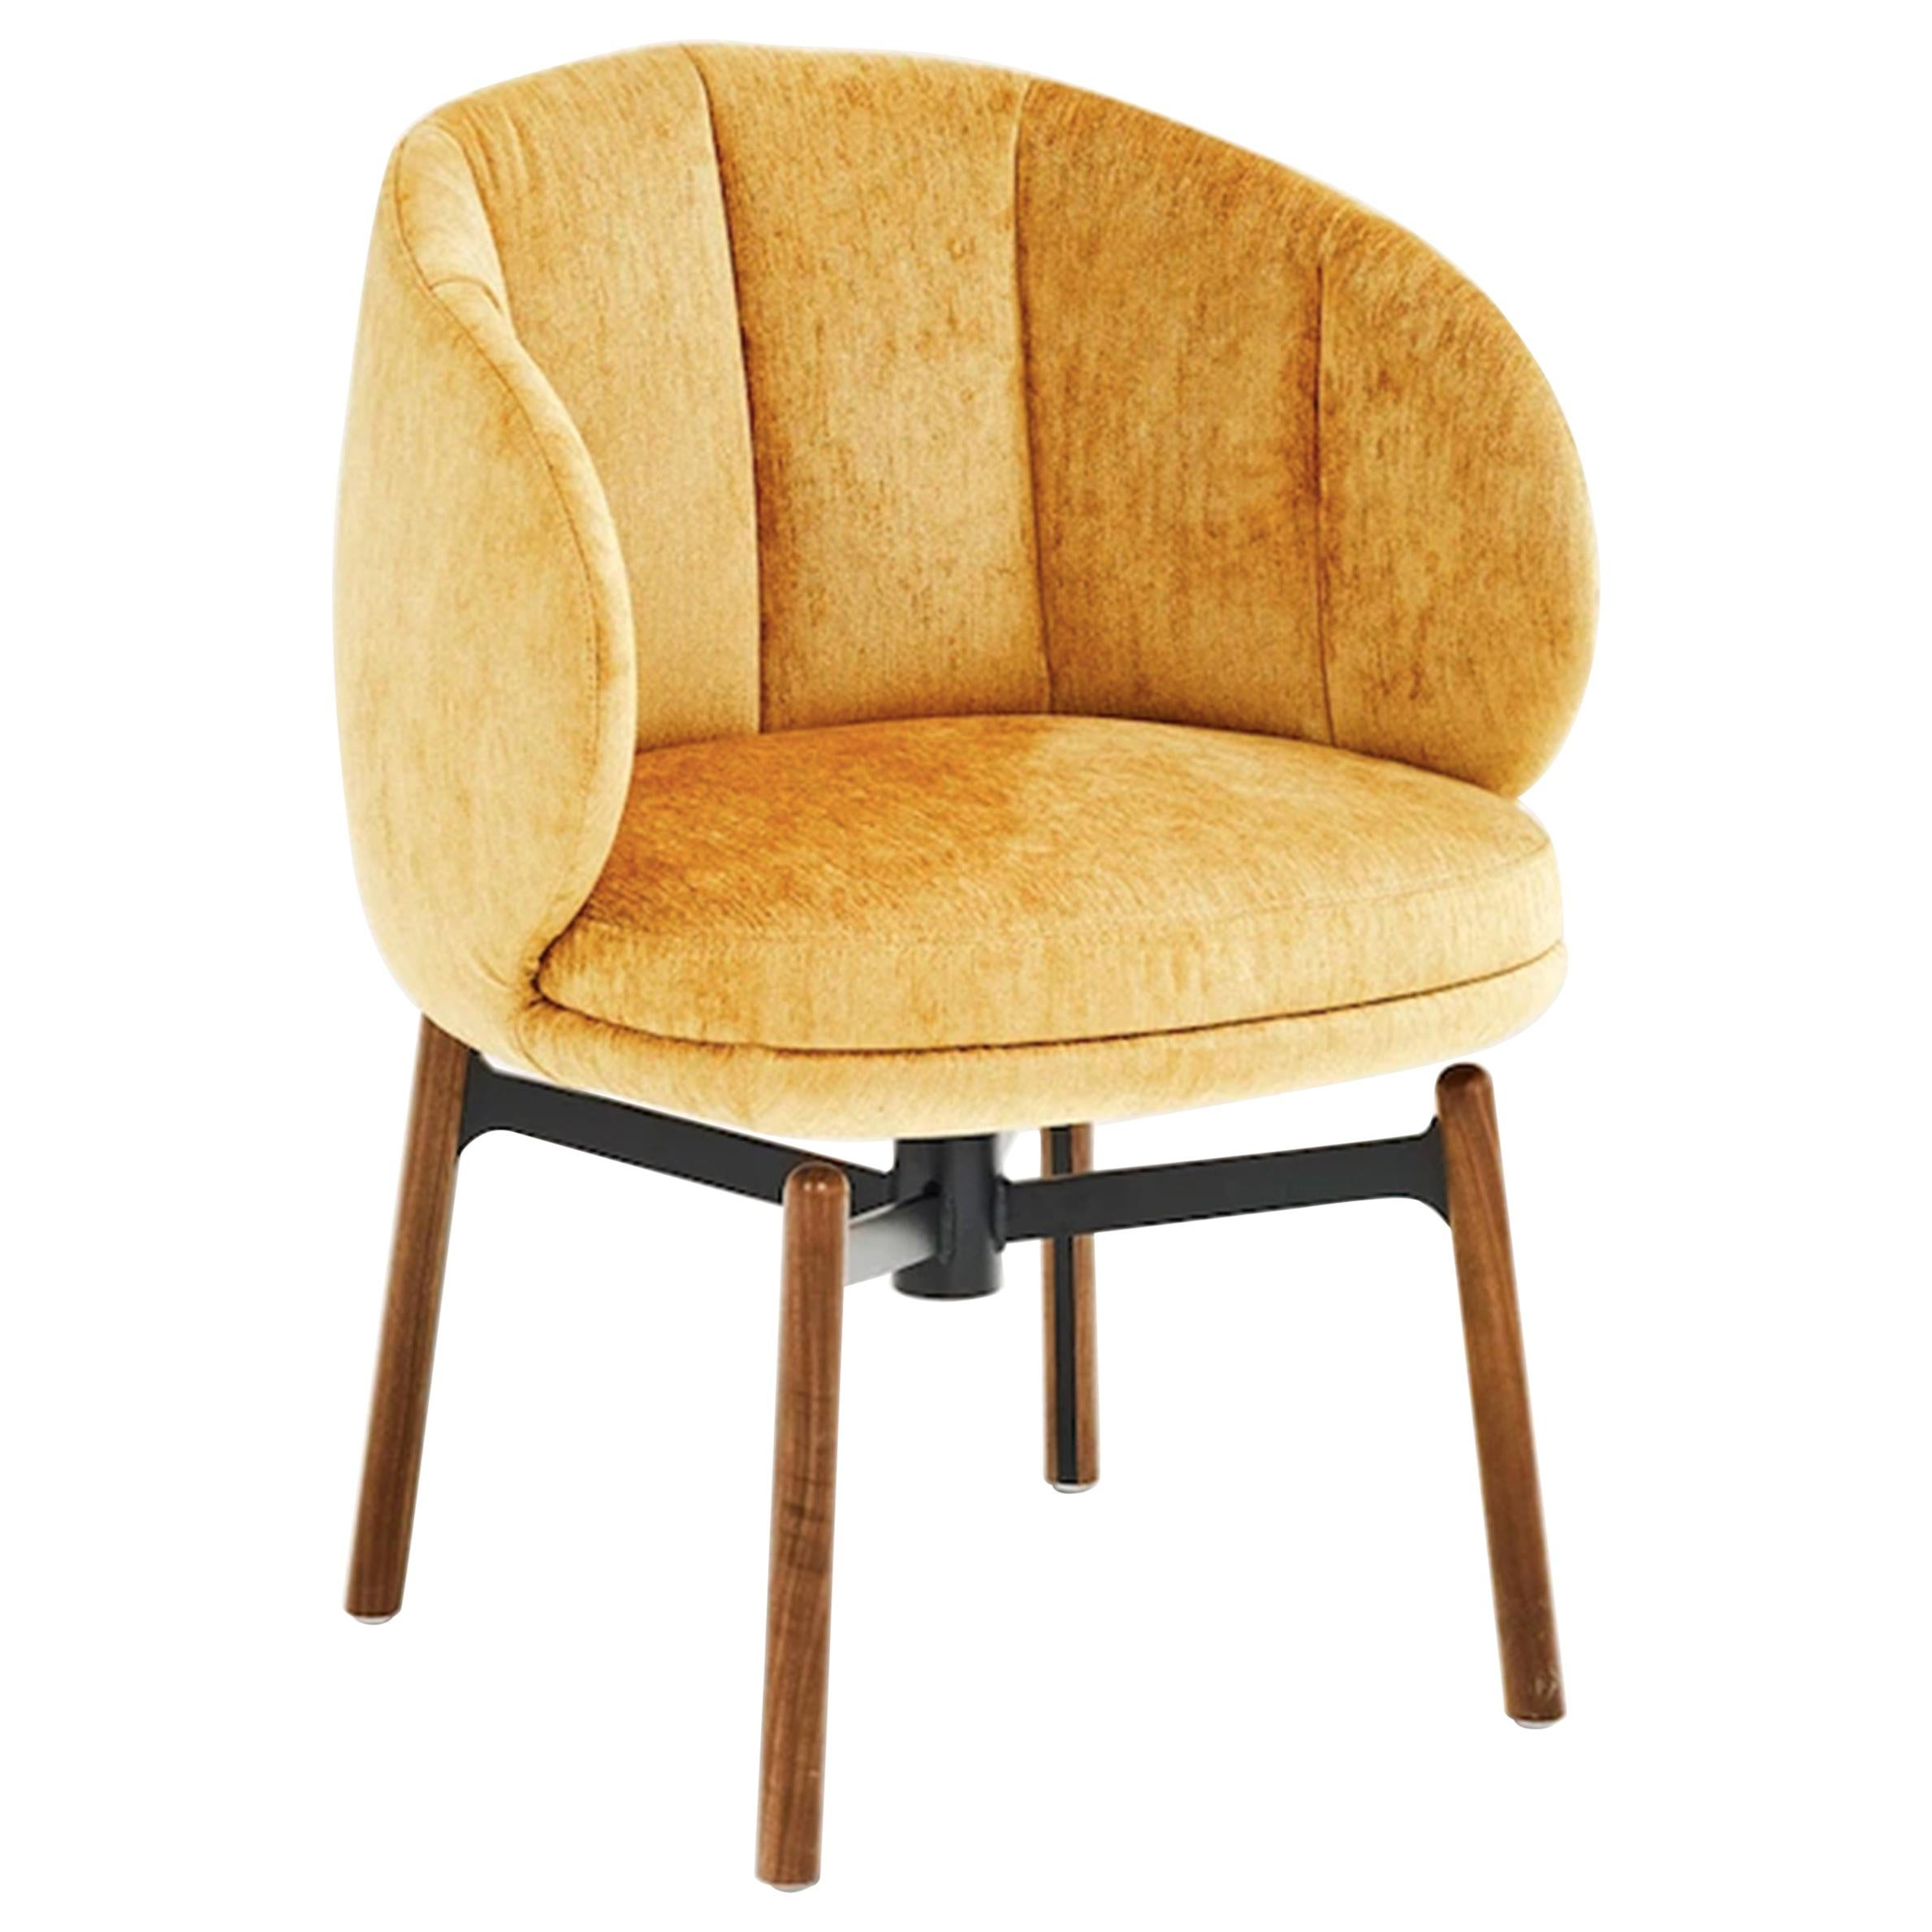 Wittmann Set of Two  Vuelta FD Swivel Chair designed by Jaime Hayon